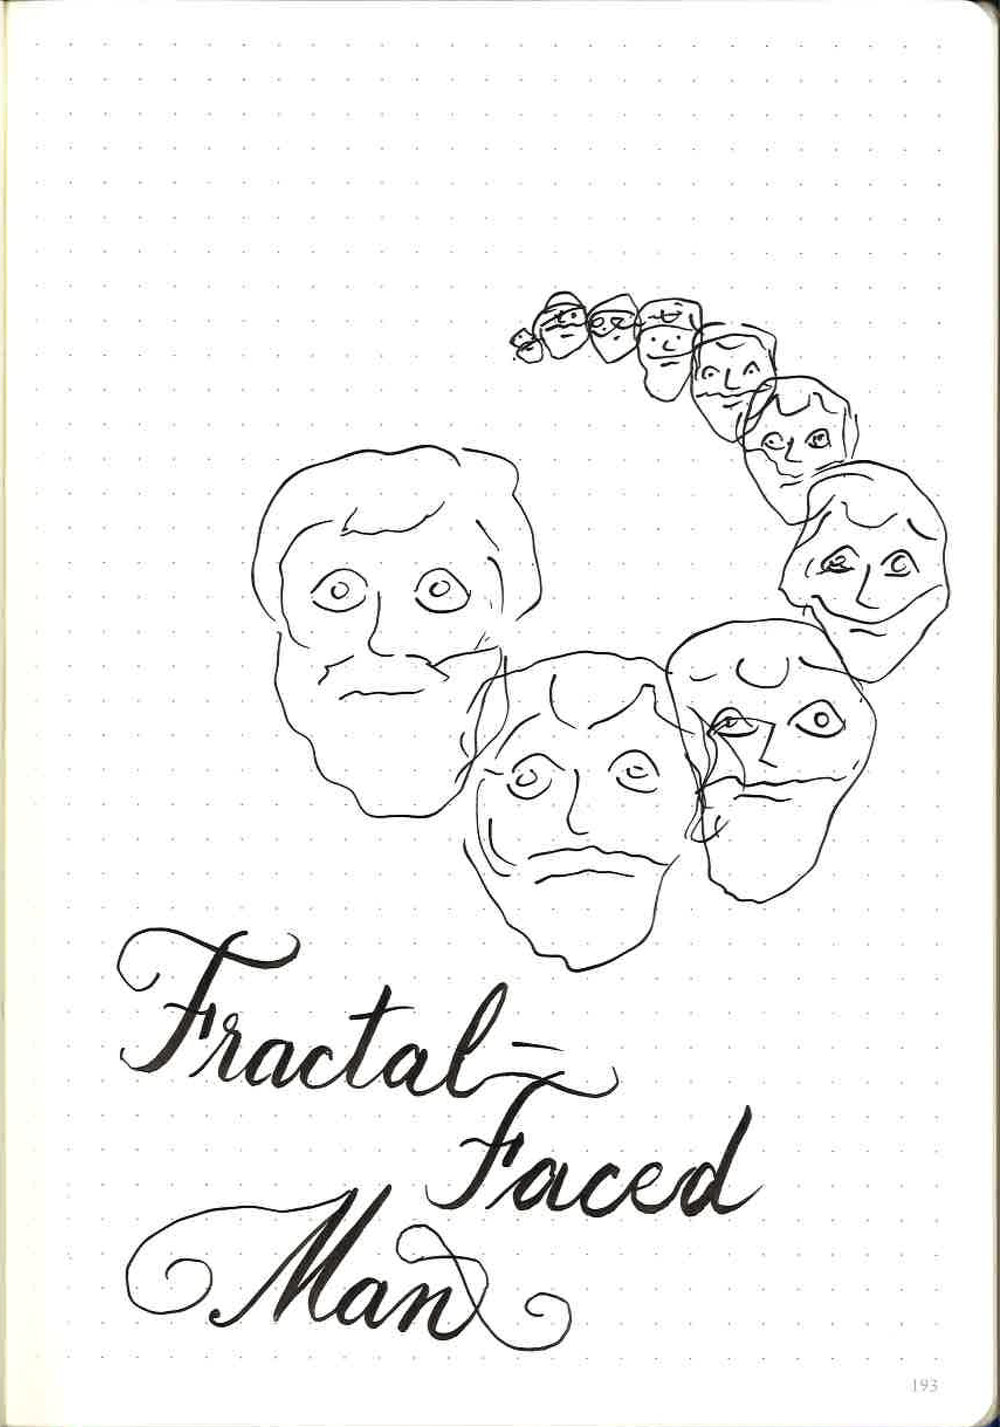 What if the whole face is fractal-ing? I'm liking this but maybe the head should rotate and overlap more. Also, some flourish-fails.